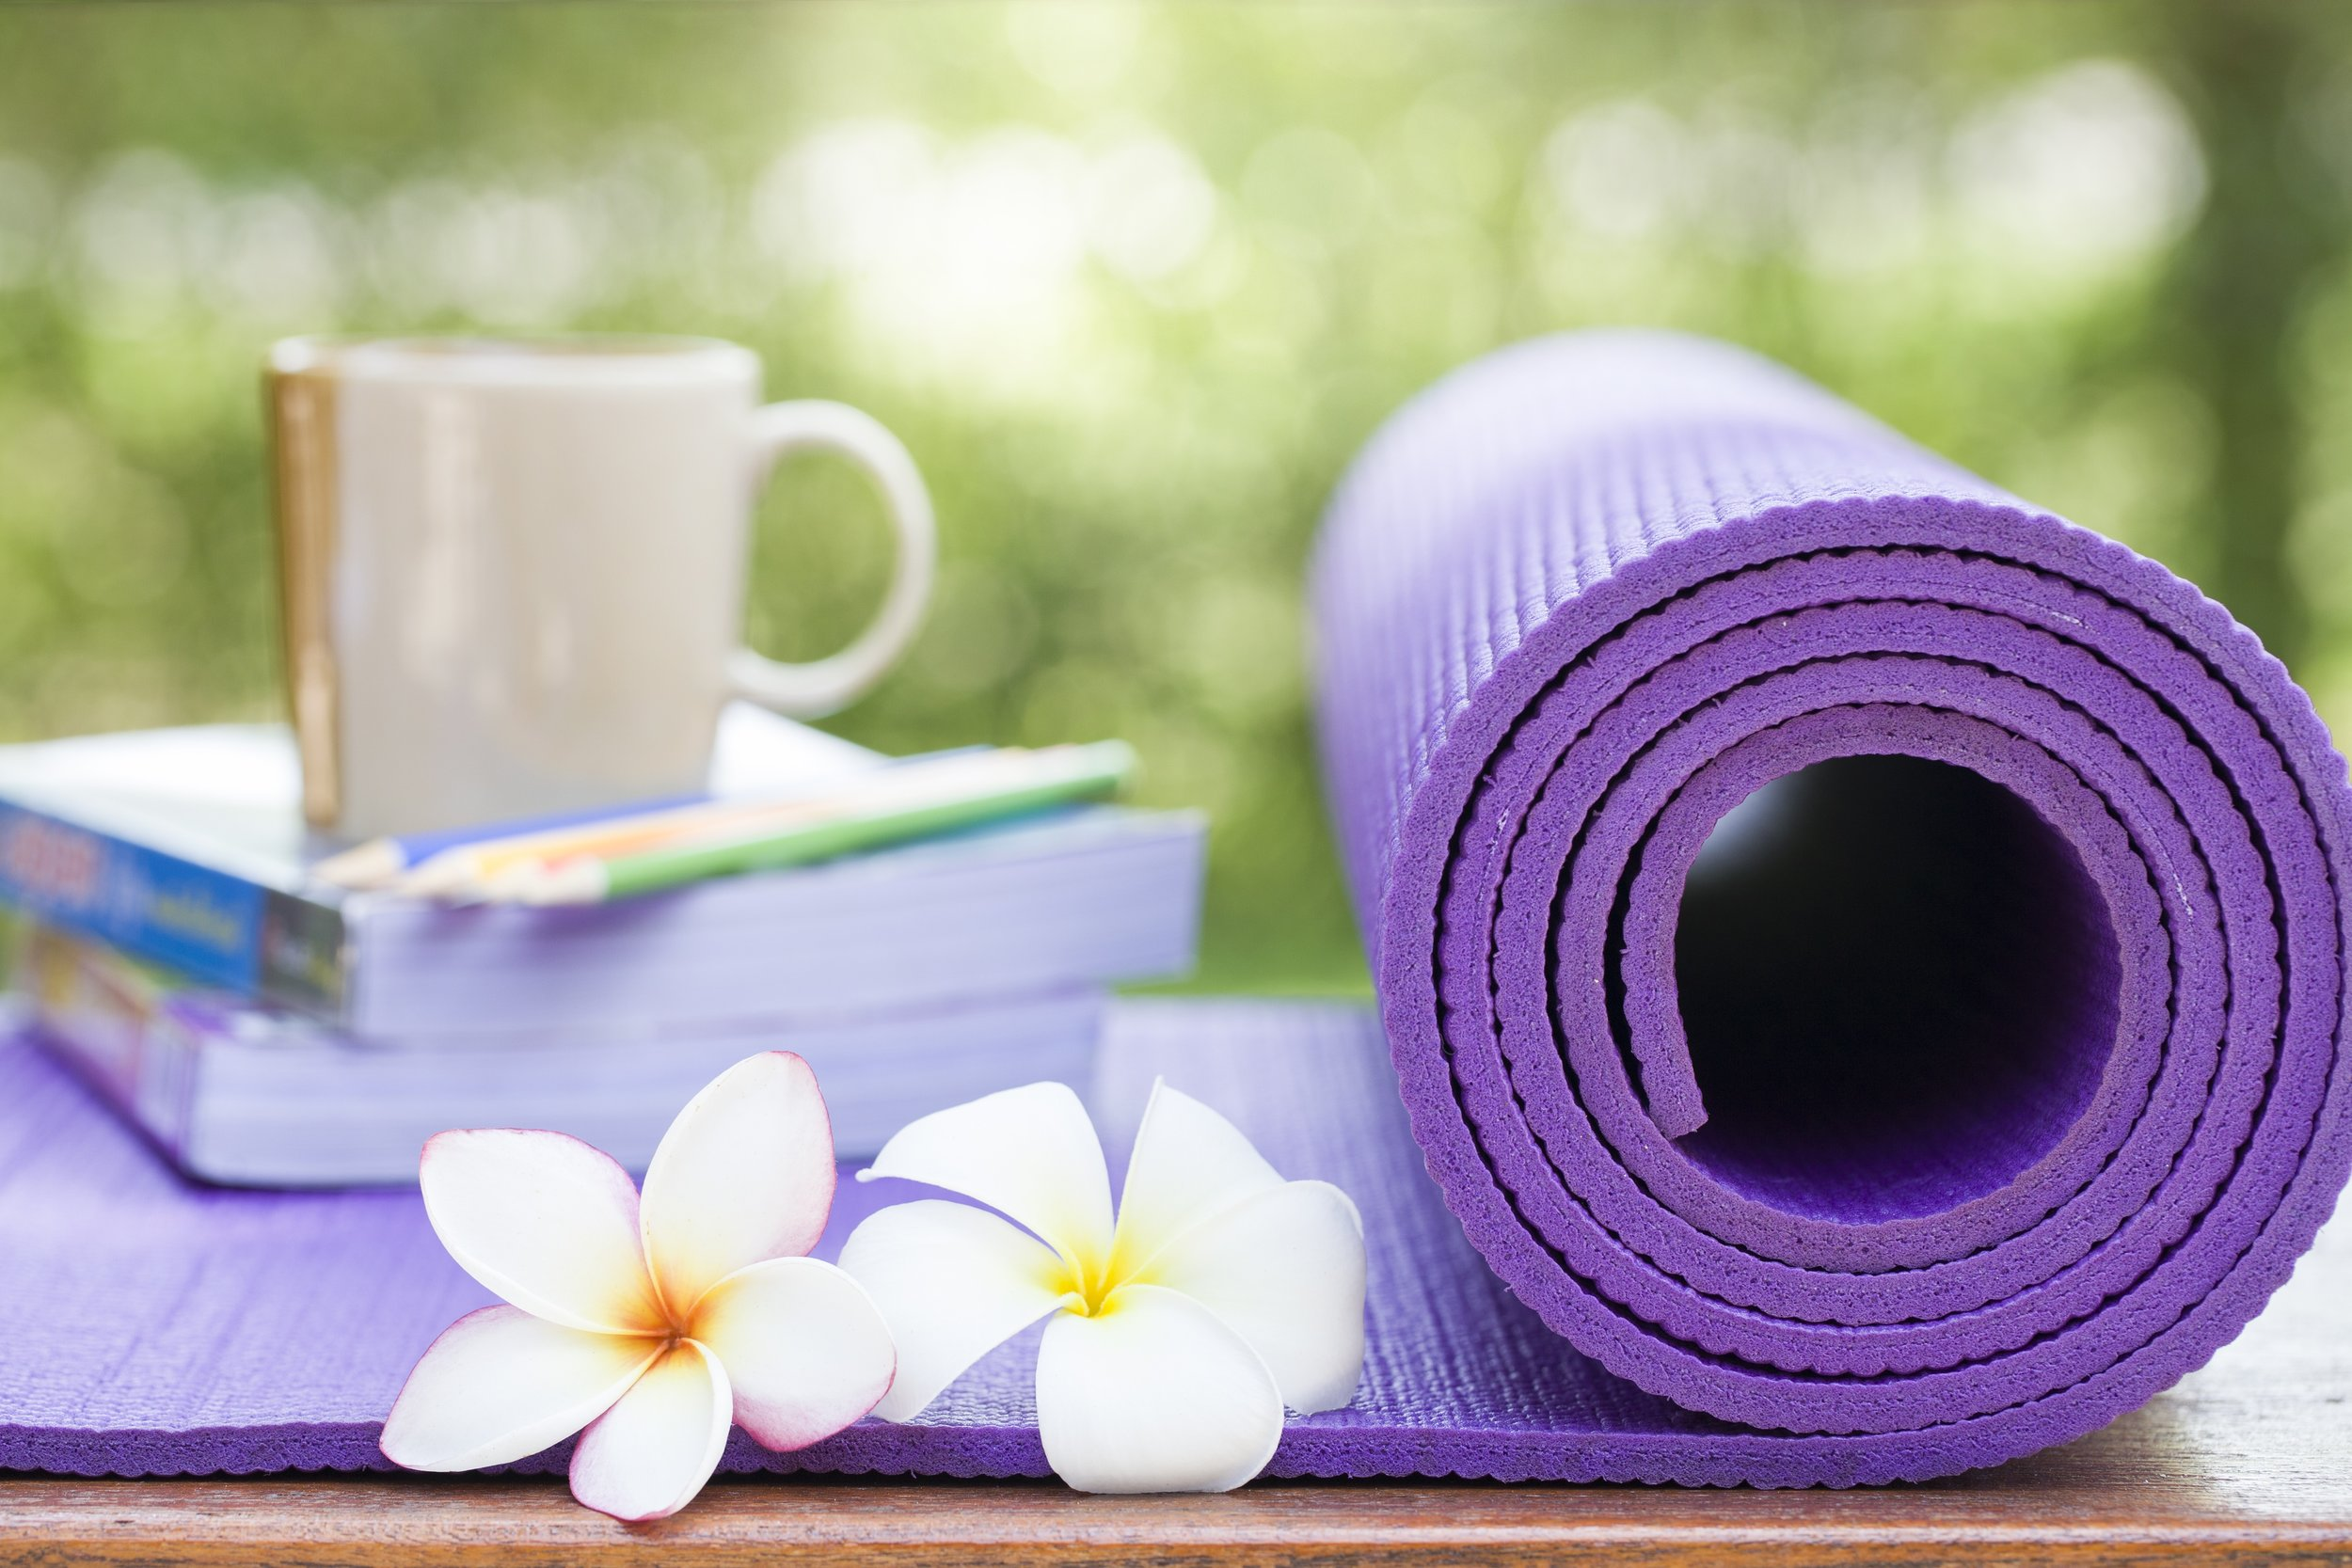 300hr Advanced Training -500hr Certification - Starting January 2020 at Mosaic Yoga in Germantown, WI